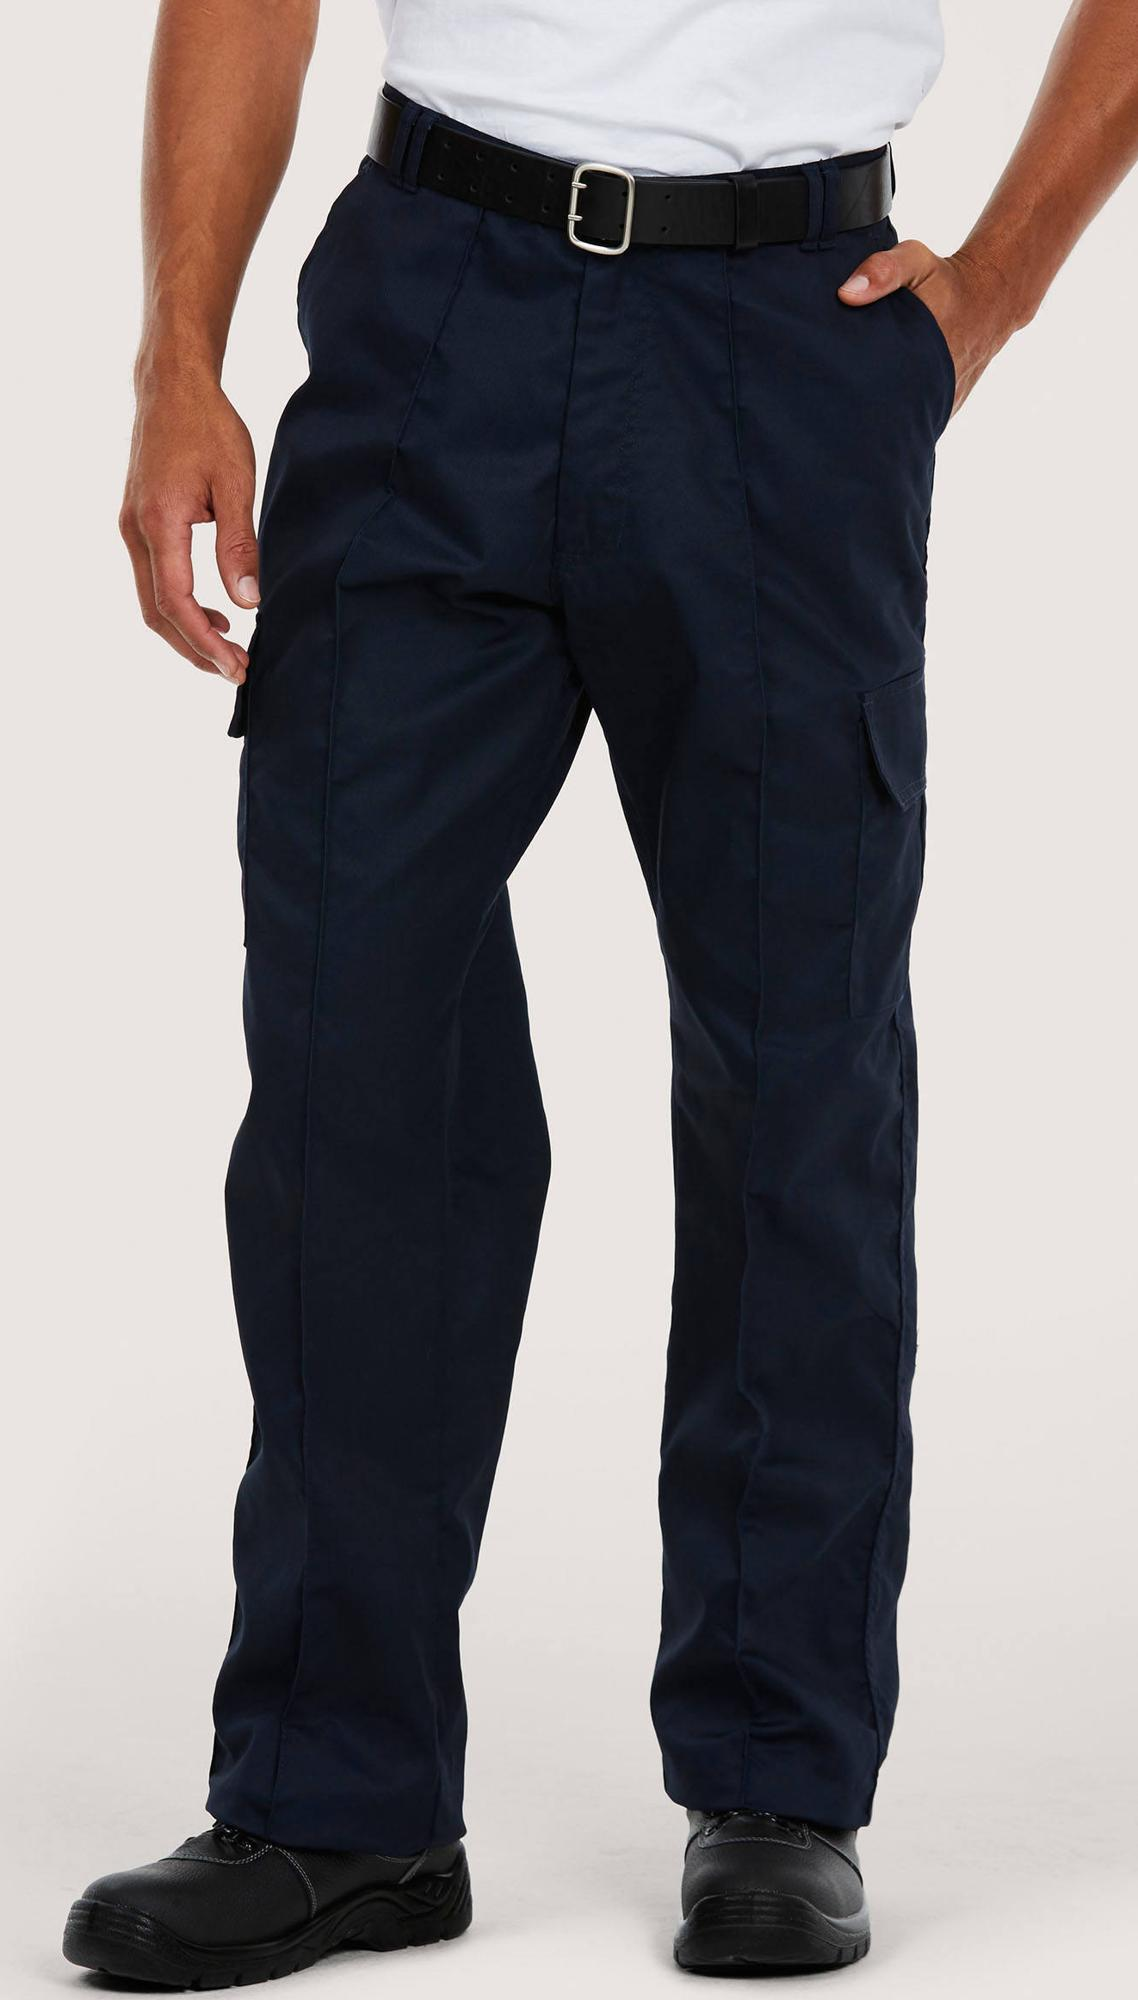 413504feda63c Uneek UC902 Cargo Combat Trousers Same day despatch